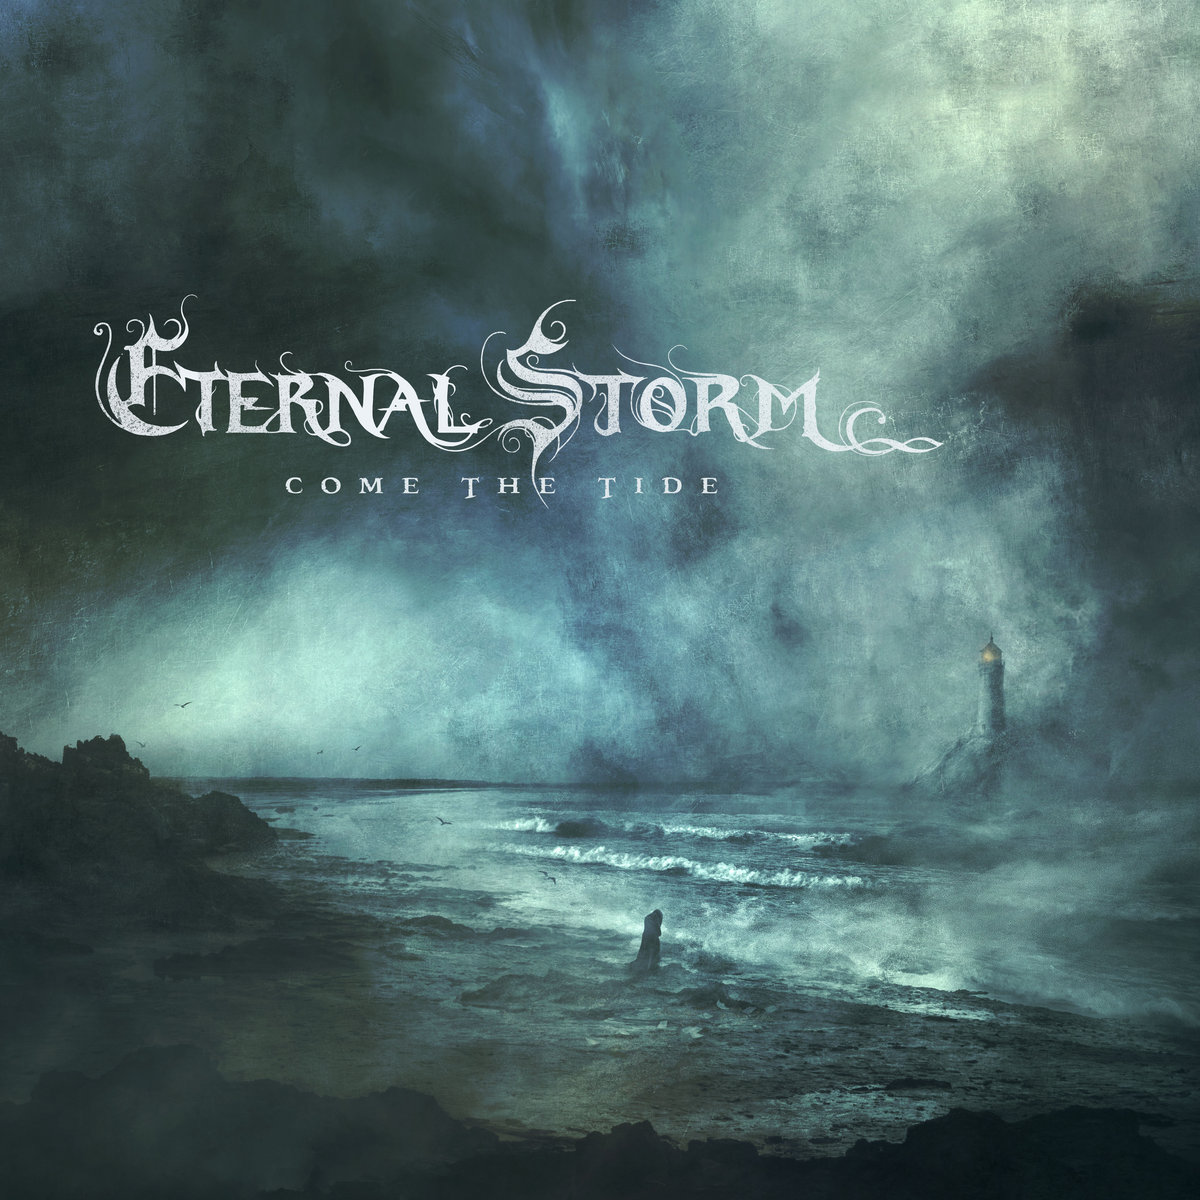 Eternal Storm: Come the Tide